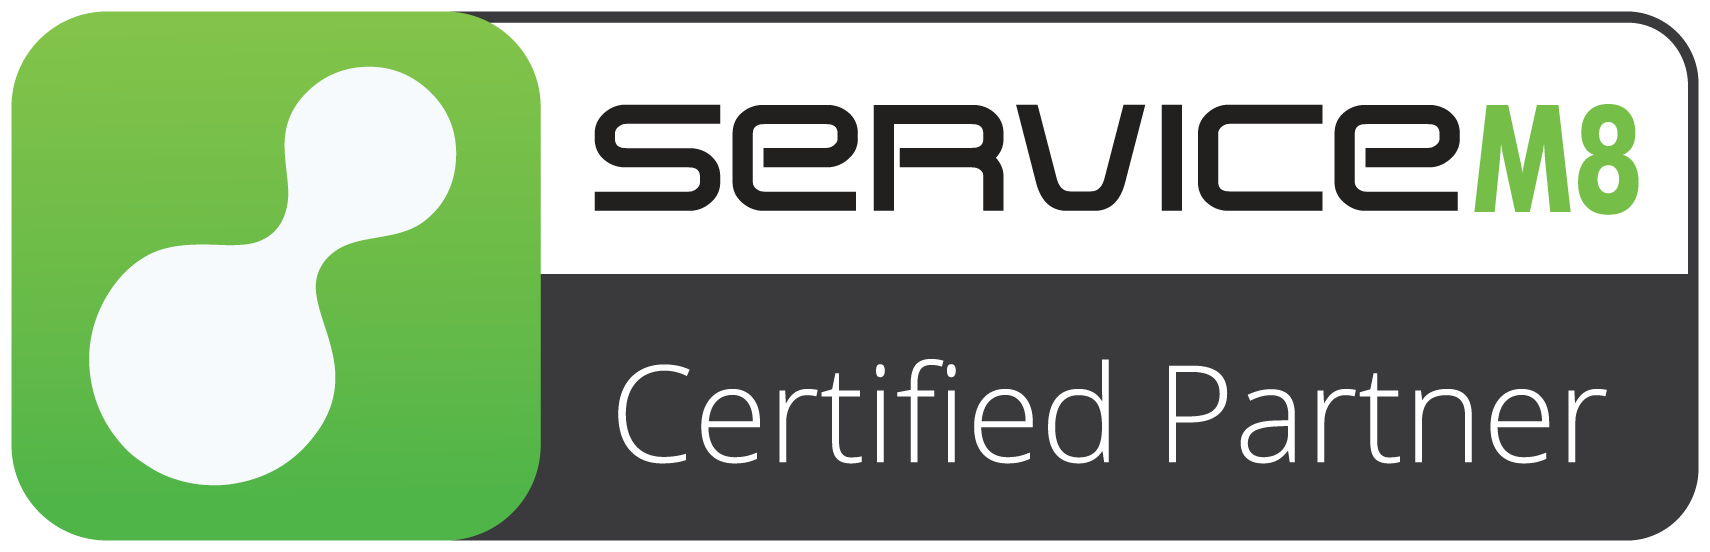 HPC is a ServiceM8 Certified Partner